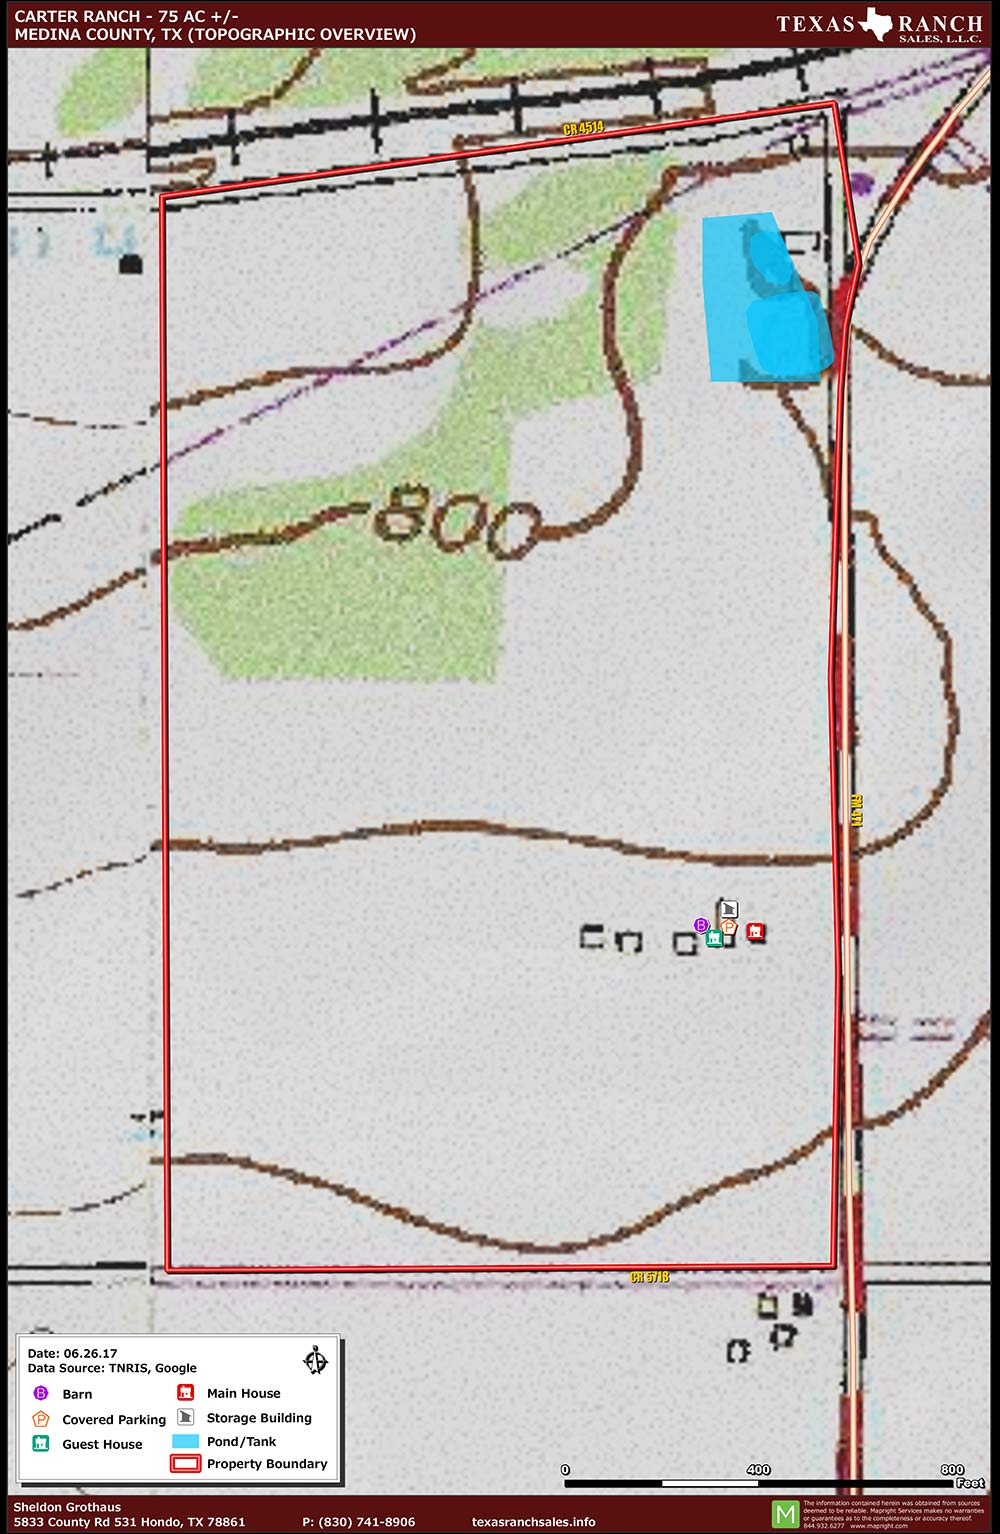 75 Acre Ranch Medina Topography Map